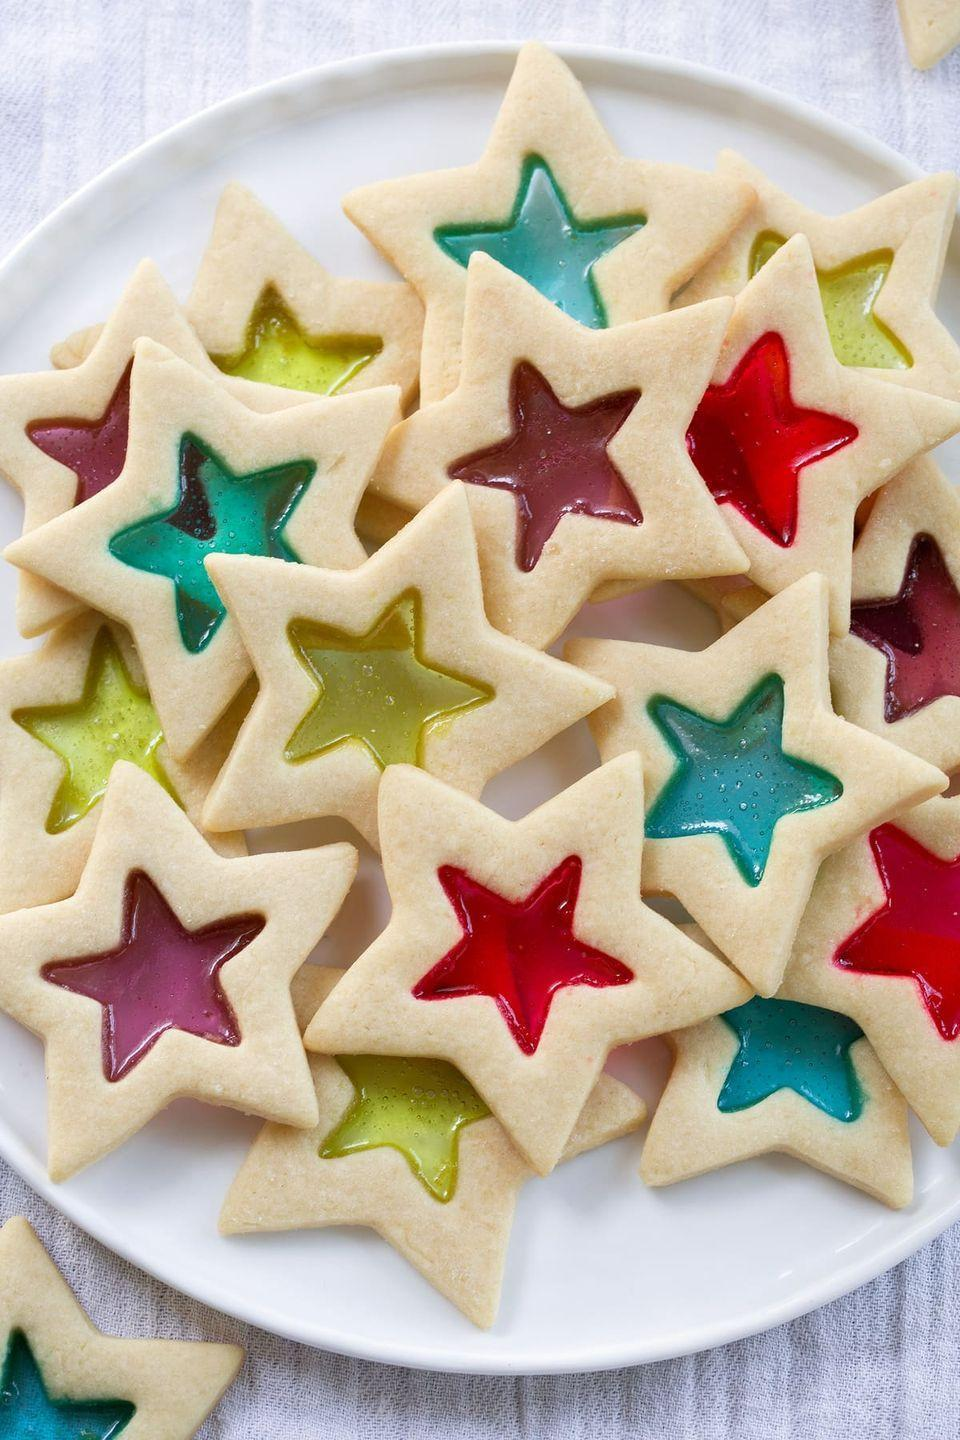 """<p>These cookies are reminiscent of the stained glass windows at church on Christmas morning—and they're so much easier to make than you think.</p><p><strong>Get the recipe at <a href=""""https://www.cookingclassy.com/stained-glass-cookies/"""" rel=""""nofollow noopener"""" target=""""_blank"""" data-ylk=""""slk:Cooking Classy"""" class=""""link rapid-noclick-resp"""">Cooking Classy</a>.</strong></p><p><a class=""""link rapid-noclick-resp"""" href=""""https://www.amazon.com/JOLLY-RANCHER-Holiday-Candy-Assortment/dp/B004YGQK5K/?tag=syn-yahoo-20&ascsubtag=%5Bartid%7C10050.g.647%5Bsrc%7Cyahoo-us"""" rel=""""nofollow noopener"""" target=""""_blank"""" data-ylk=""""slk:SHOP HARD CANDIES"""">SHOP HARD CANDIES</a></p>"""